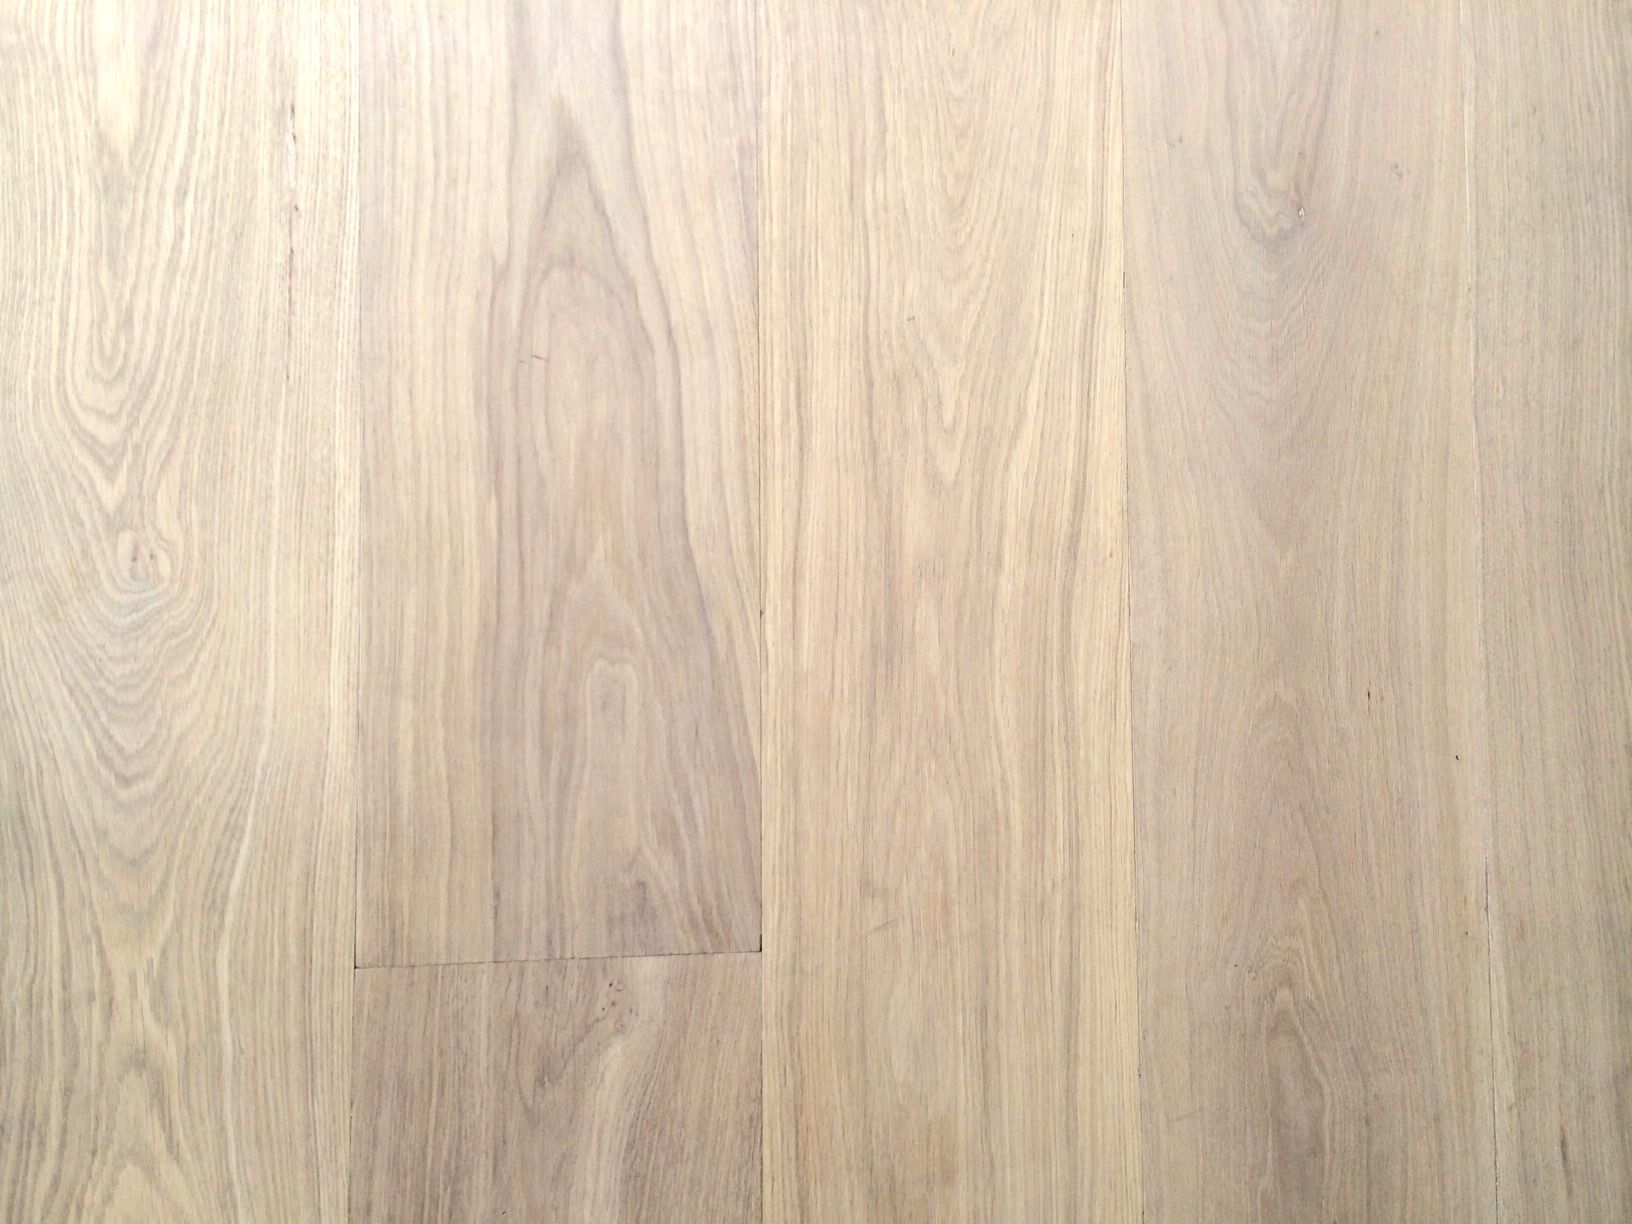 Tongue N Groove Freado Soft And Natural Feels Velvety To Touch Boards Available From Http Www Tonguengroovef Light Wood Floors Floor Colors Treated Timber